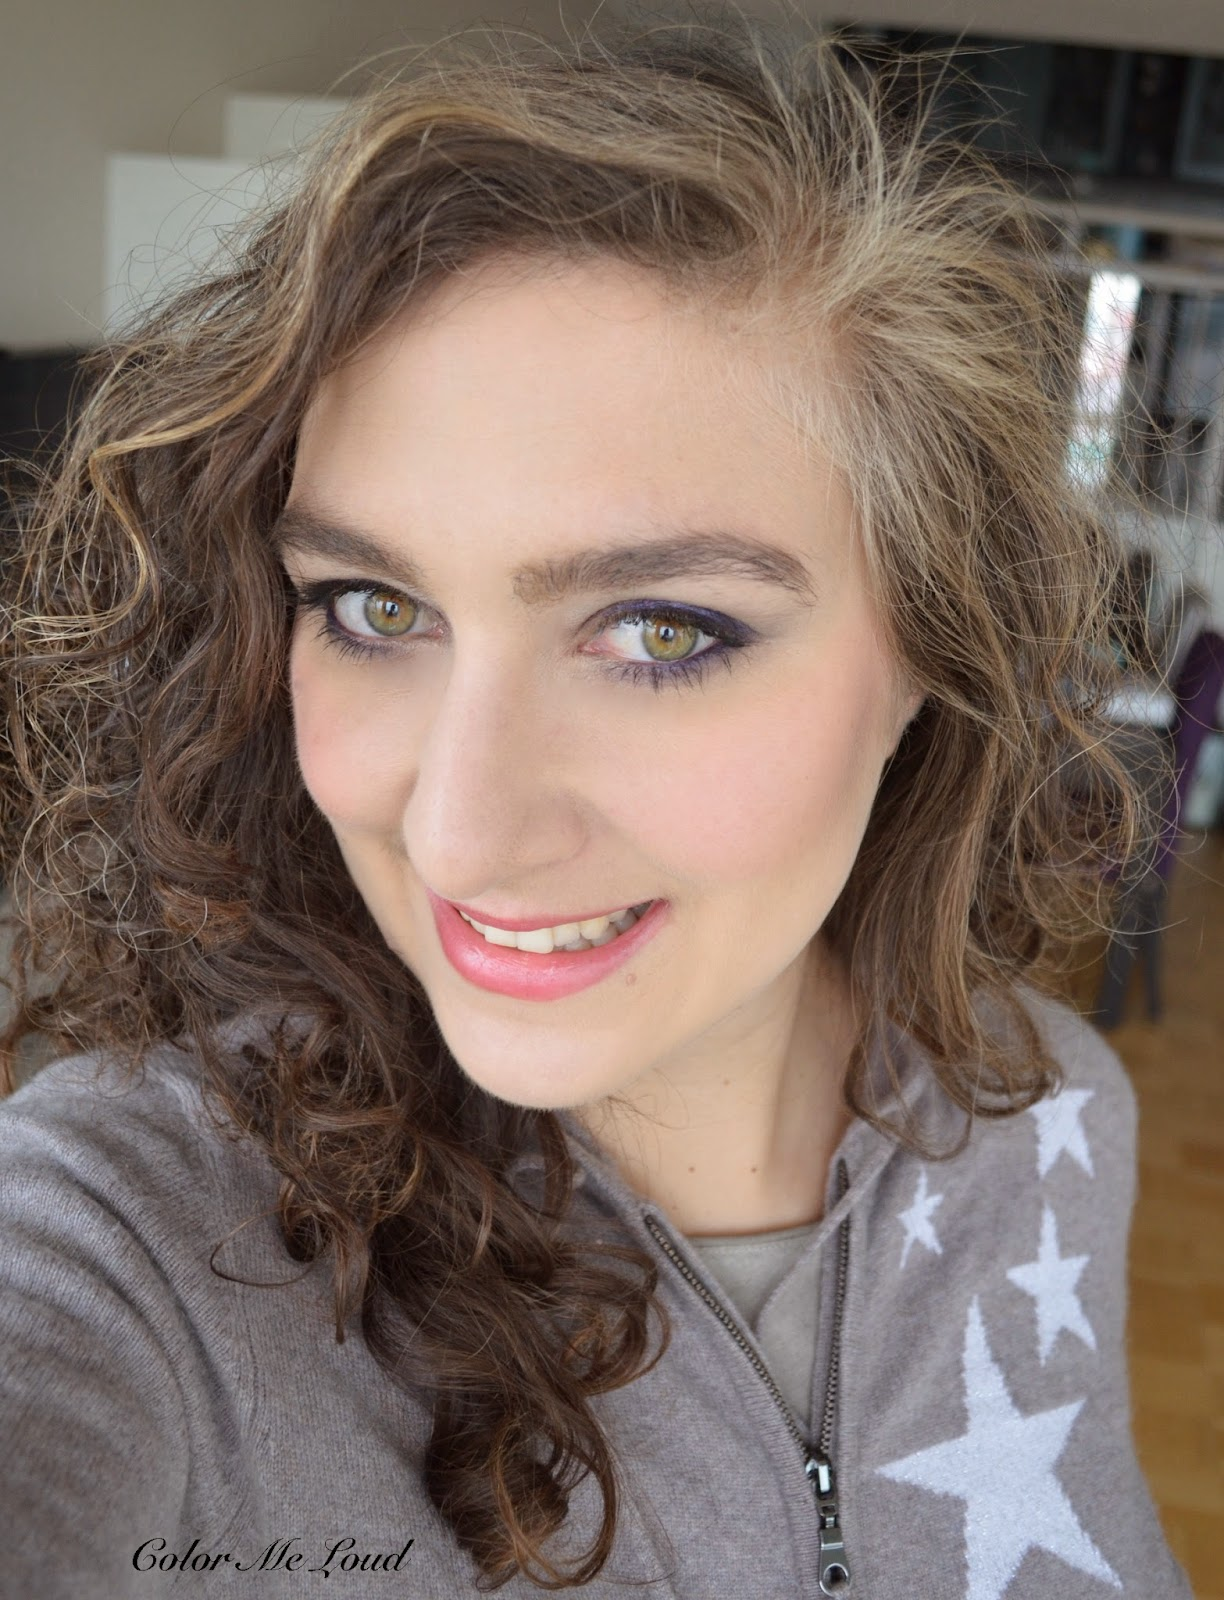 FOTD with Diorshow Fusion Mono #871 Olympe and Dior Cheek & Lip Glow